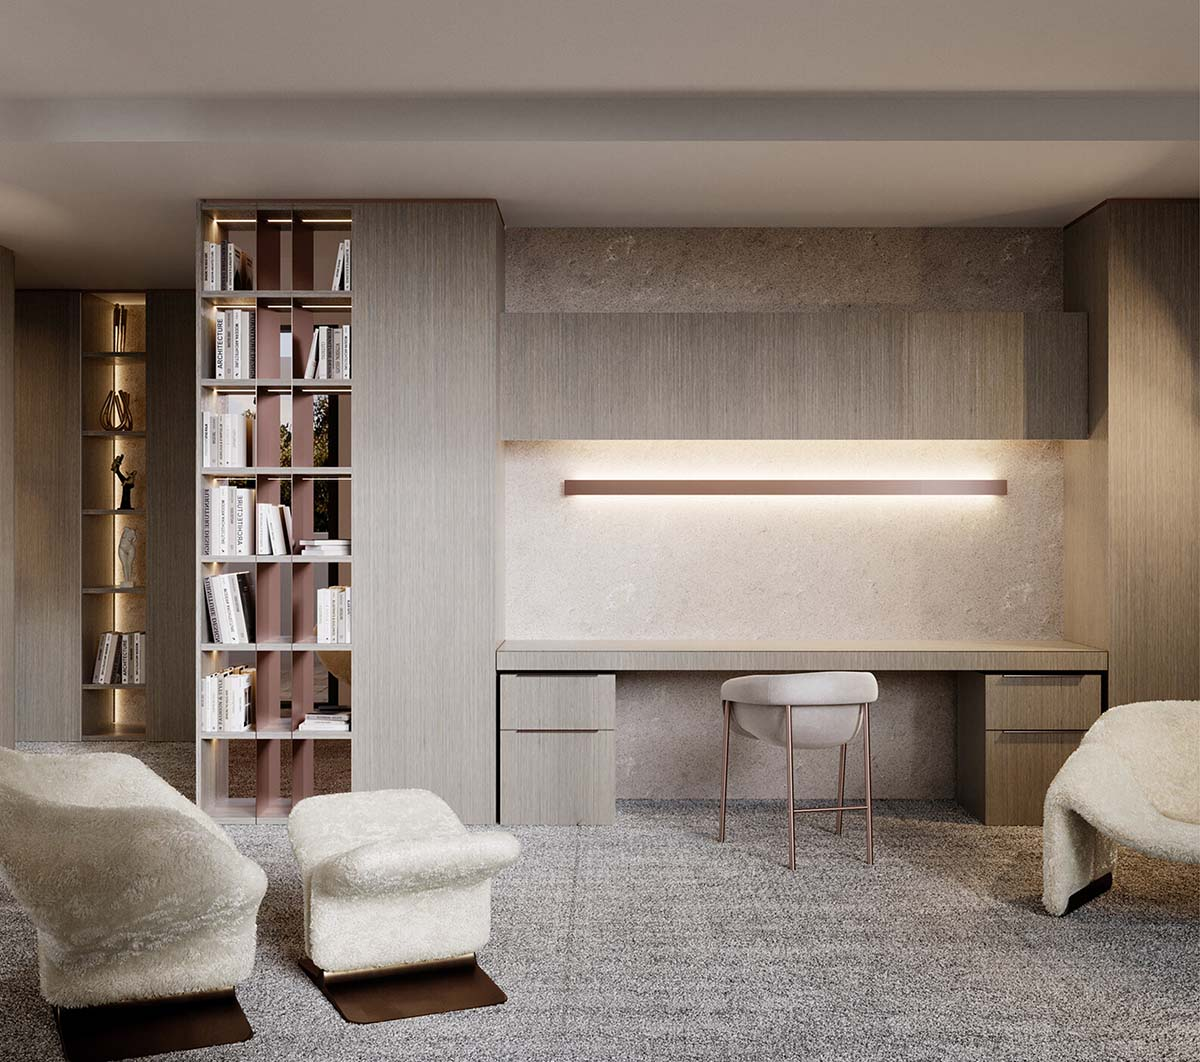 Studio room with neutral colours using timber finishes and chairs from 1stdbis